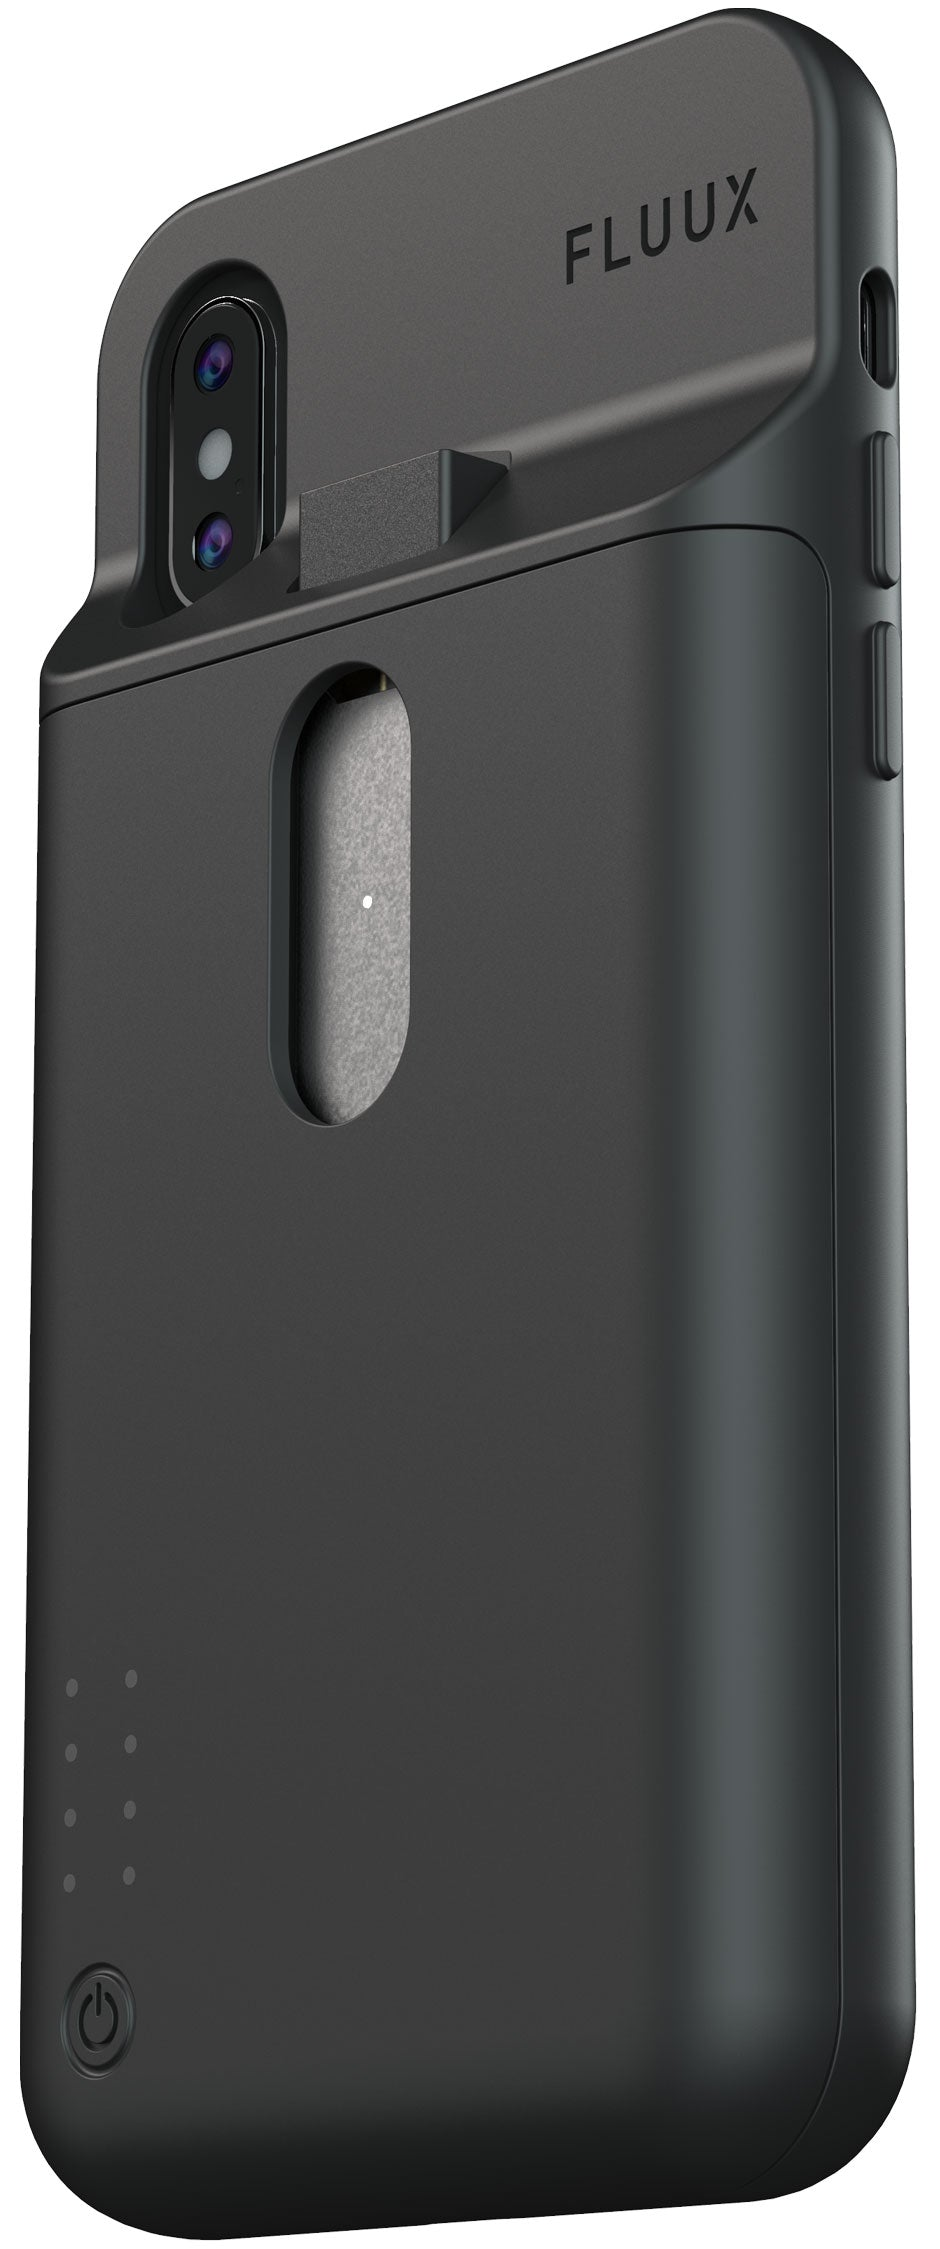 Backside view of Fluux phone case at a slight angle.